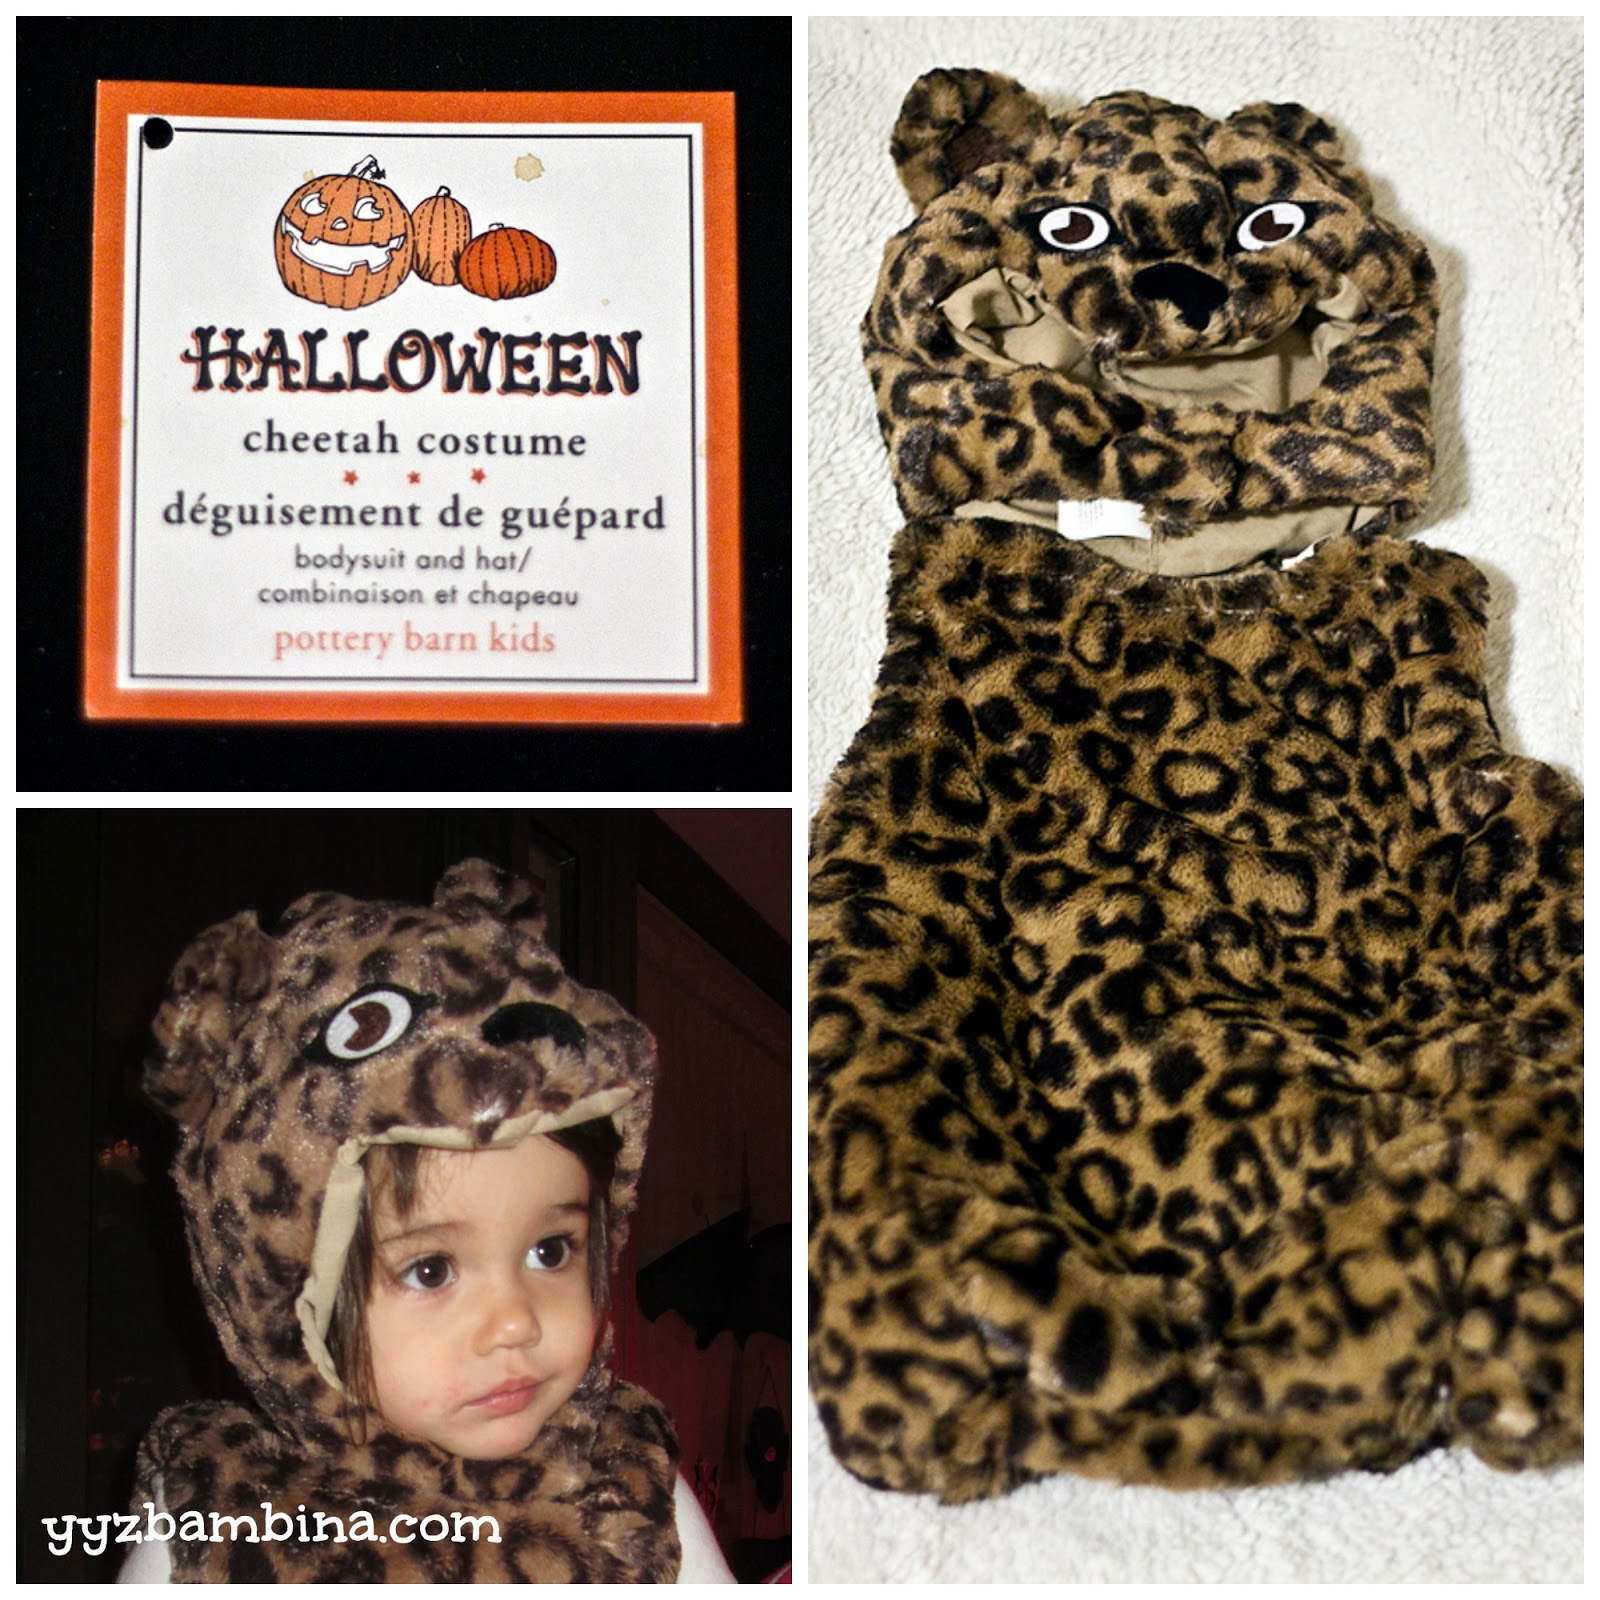 yyz bambina: a spotted halloween with pottery barn kids